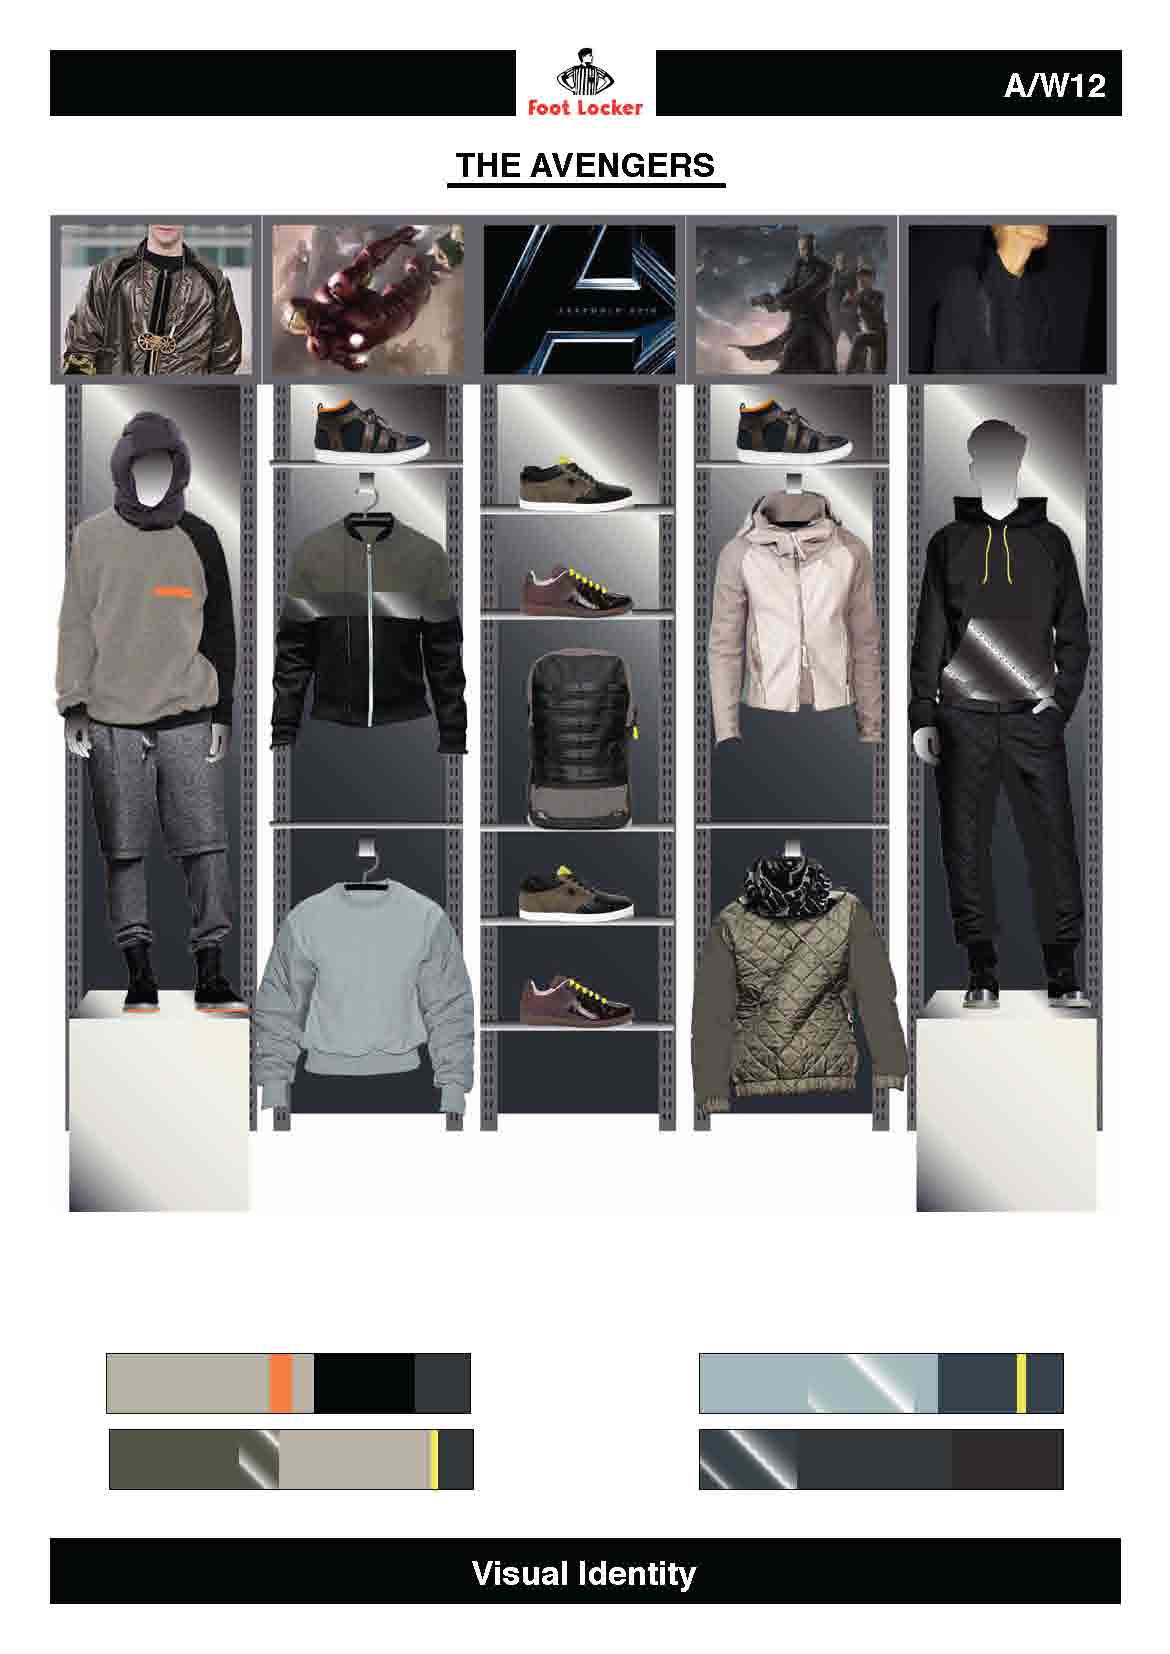 Pages from Footlocker Presentation AW12 Lowres_Page_2.jpg